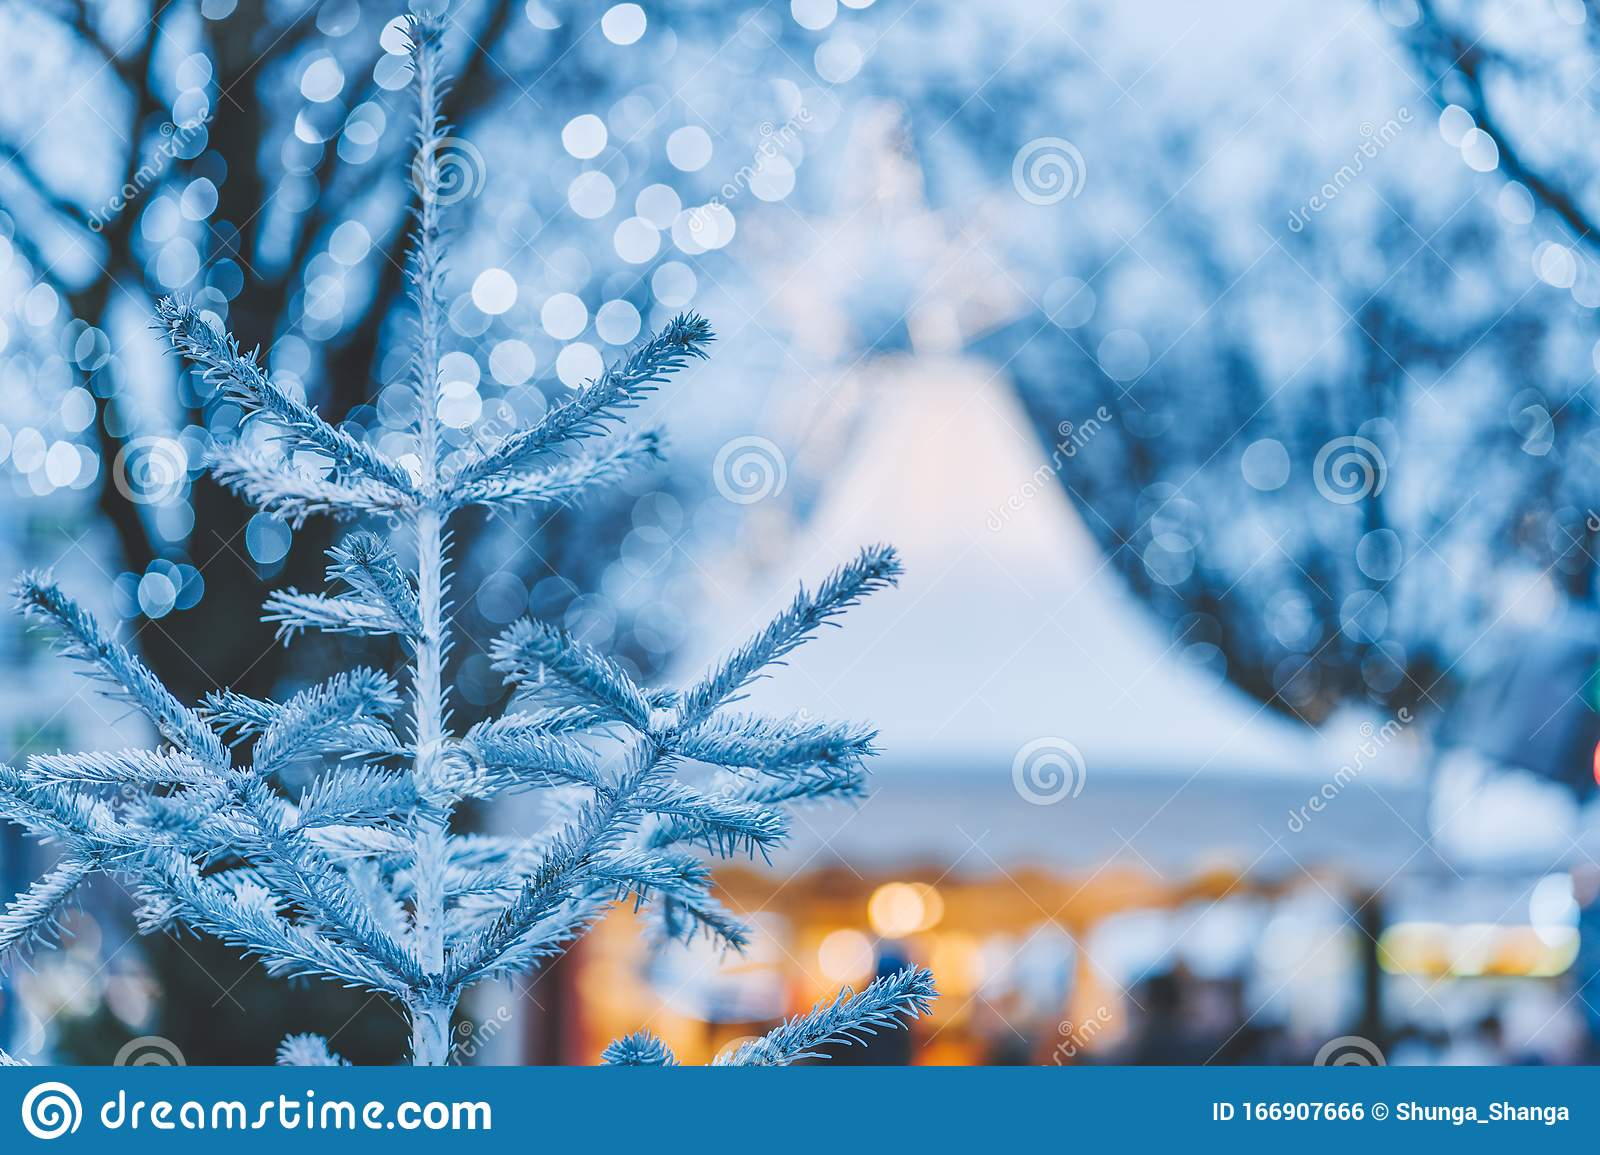 White Christmas Tree Or Fir Branches On Christmas Outdoor ...